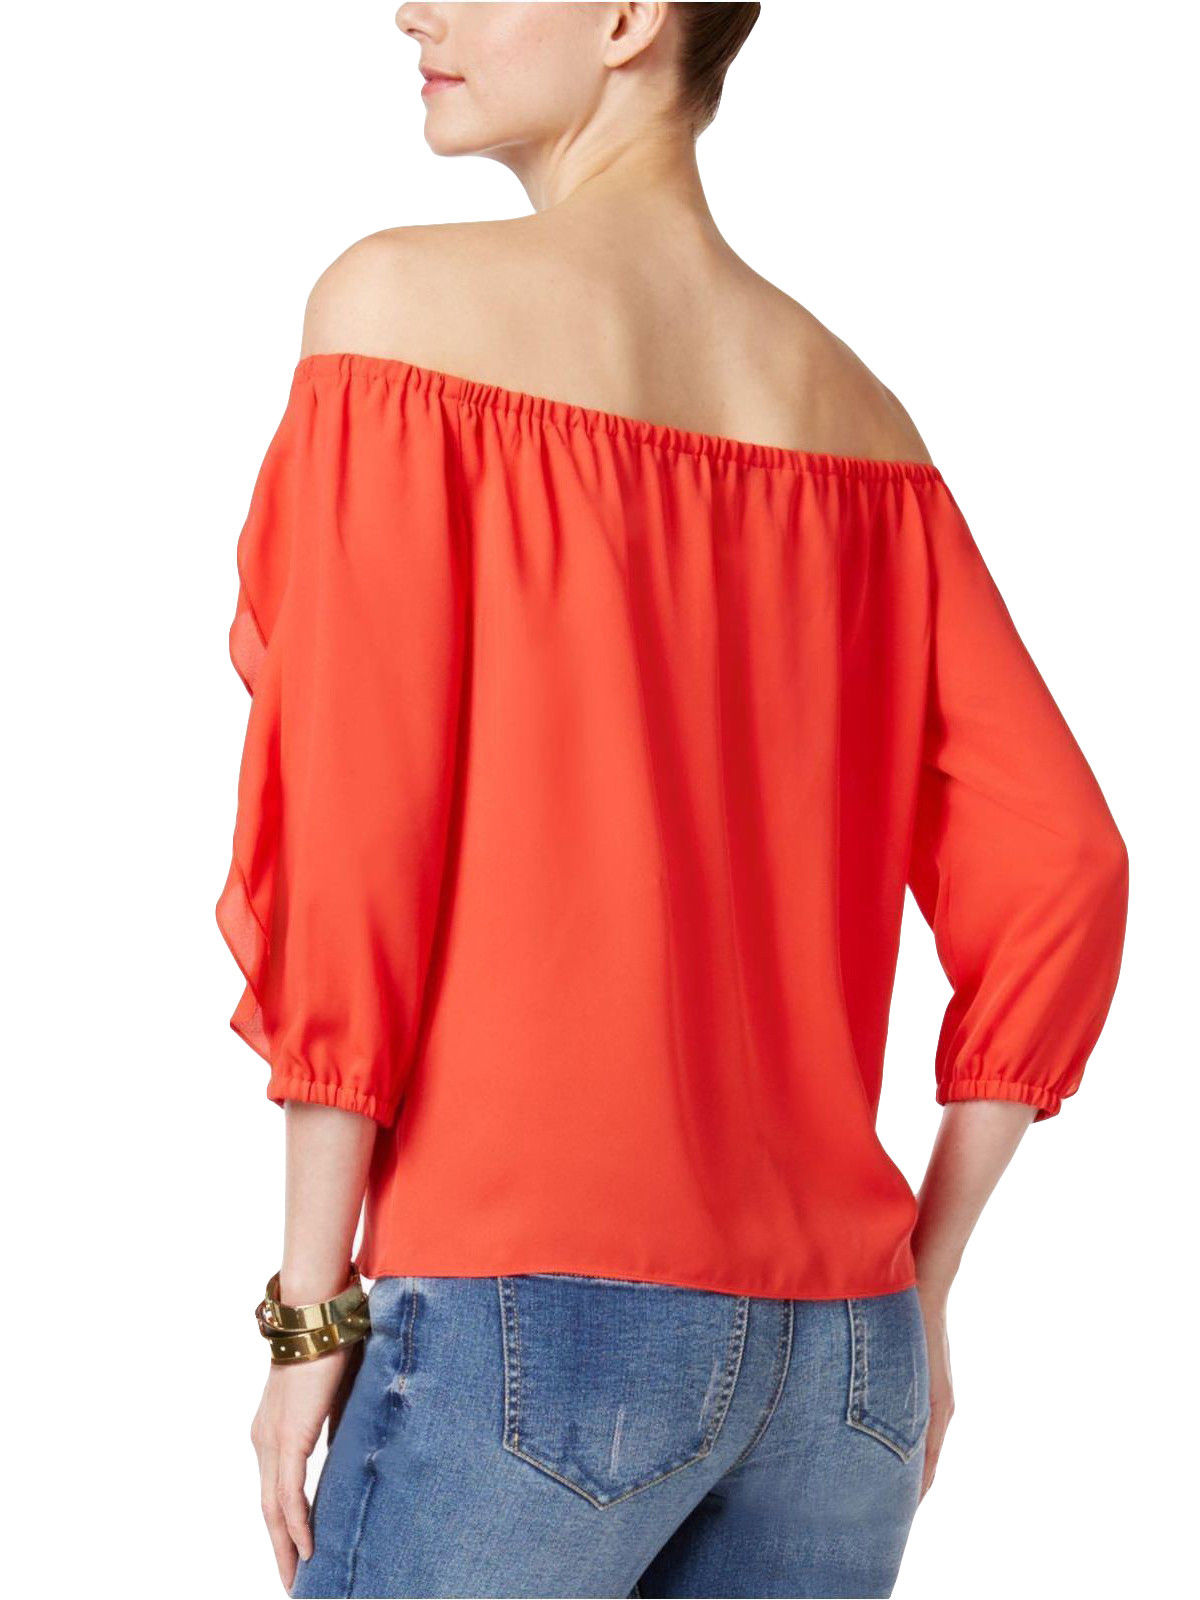 6c4762f155540 INC International Concepts Ruffled Off-The-Shoulder Top HIBISCUS ...